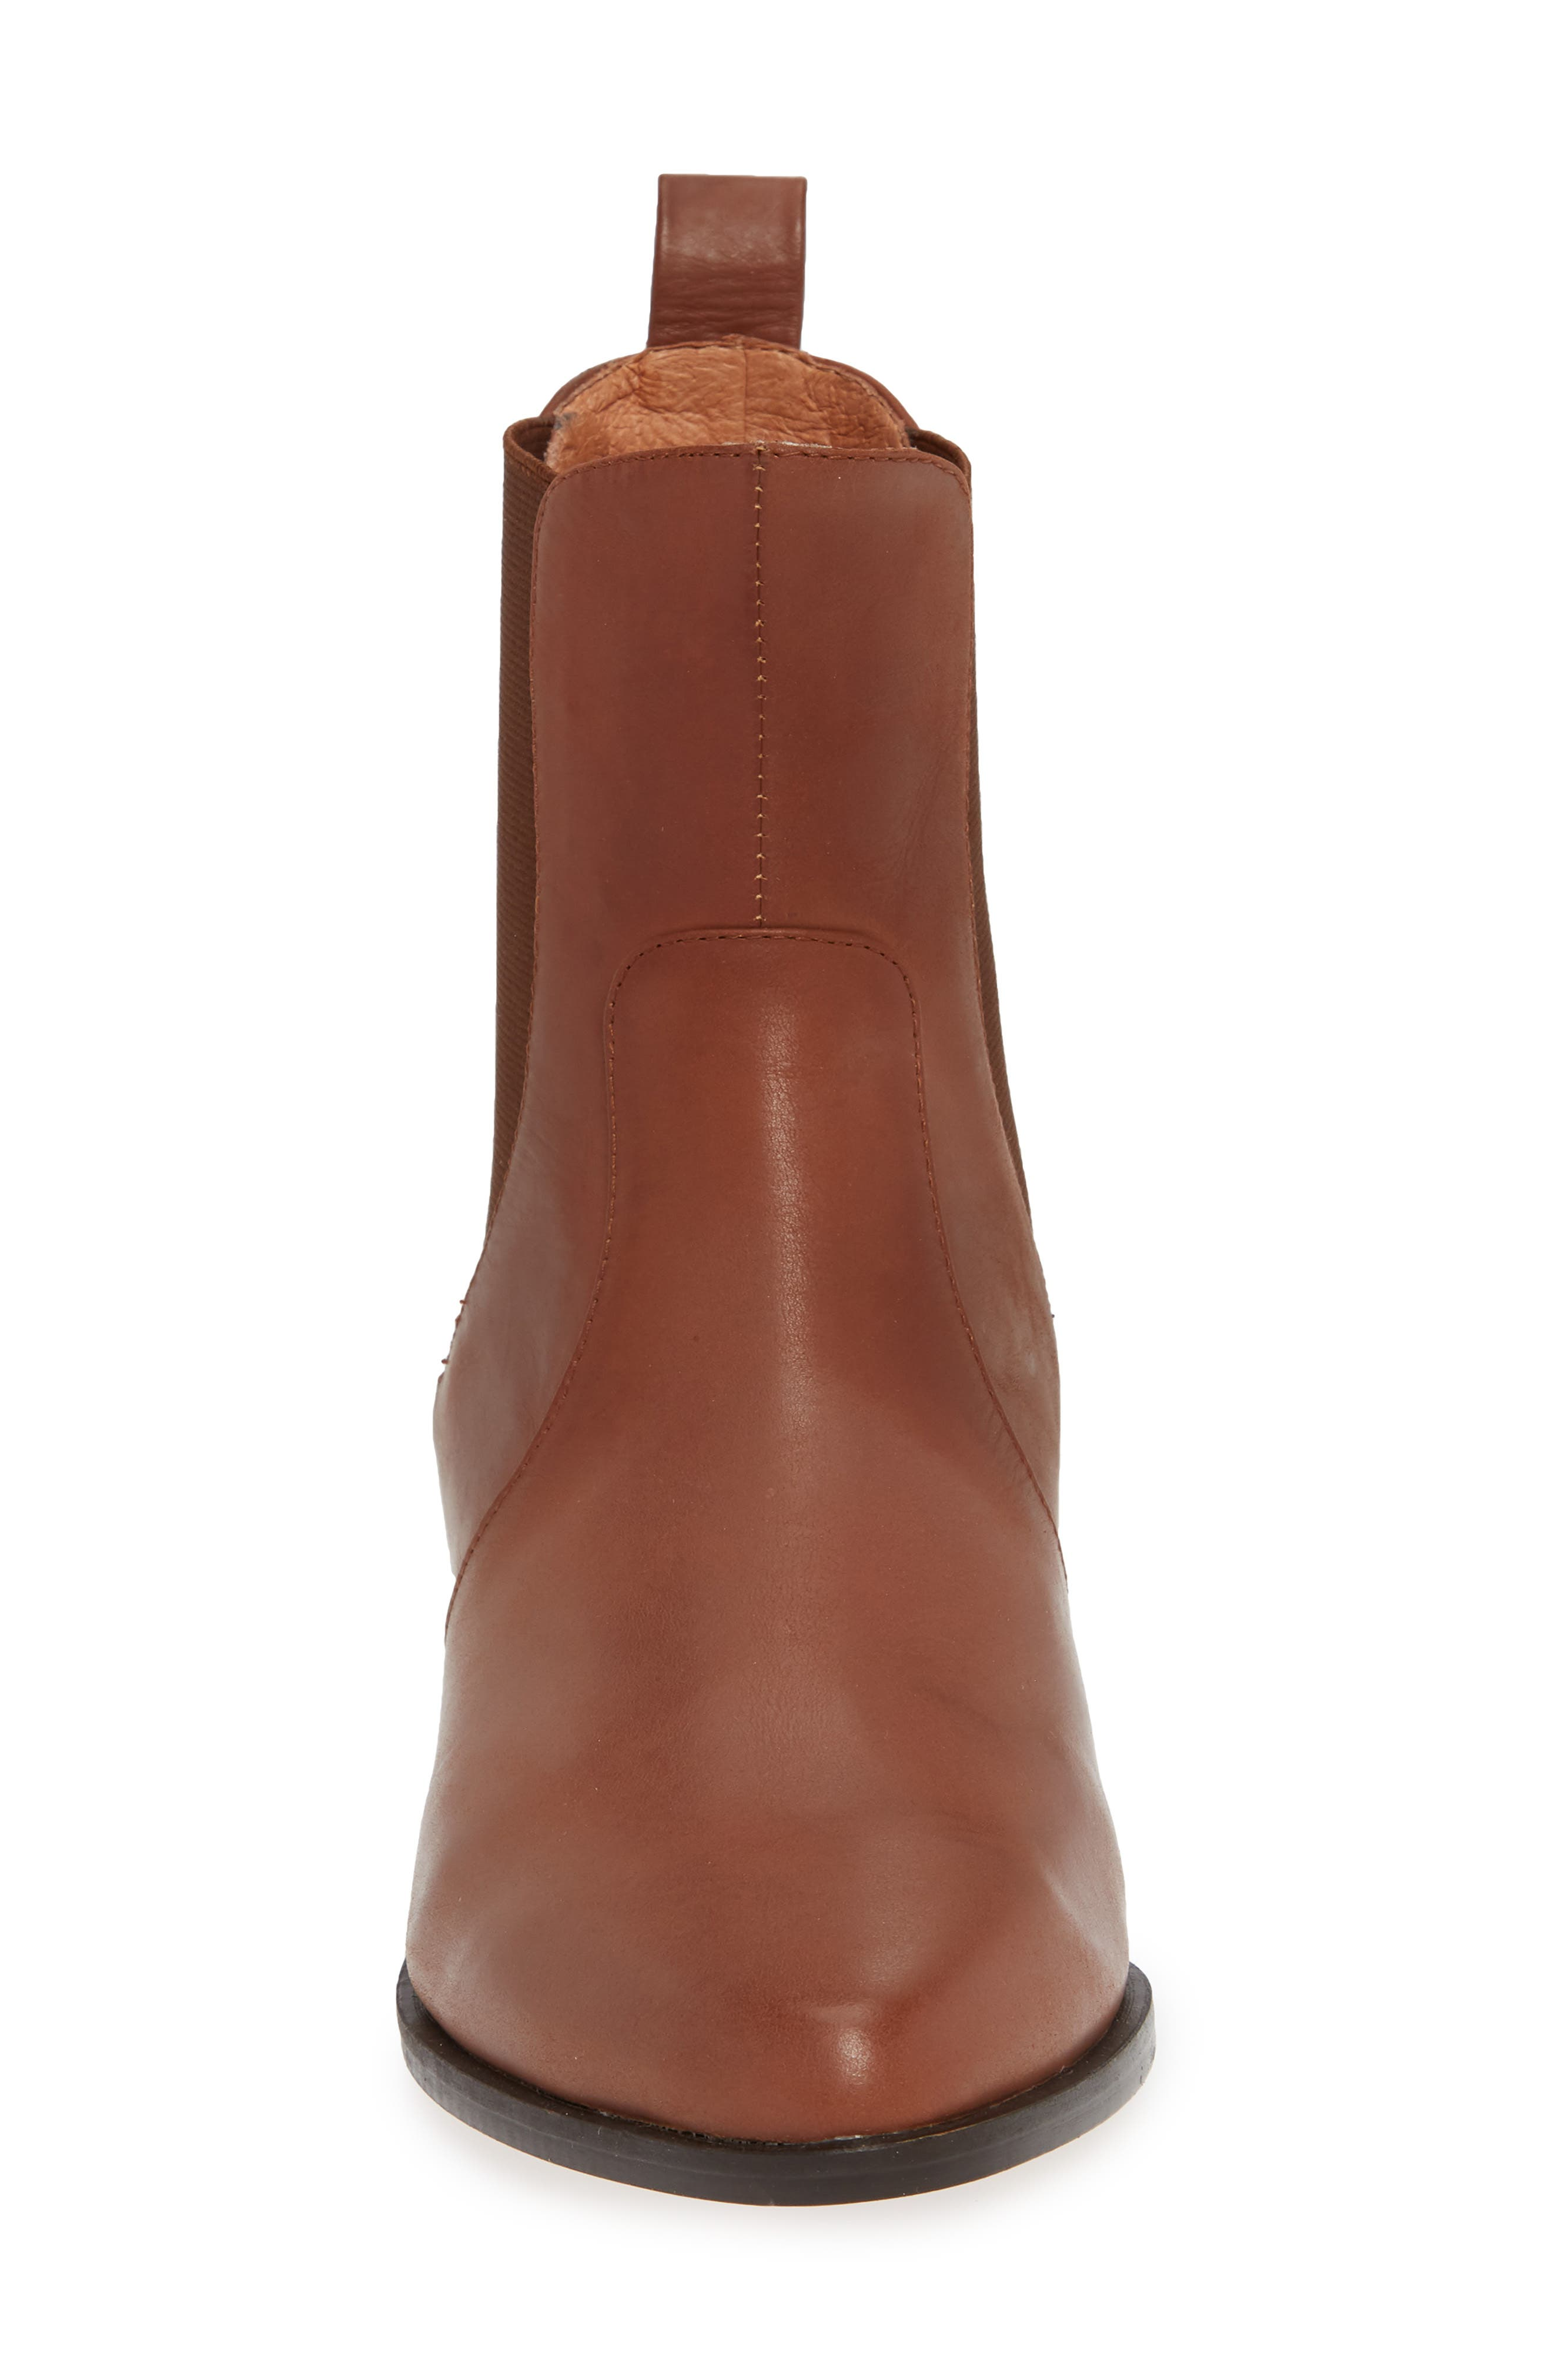 Genesis Bootie,                             Alternate thumbnail 4, color,                             TAN LEATHER